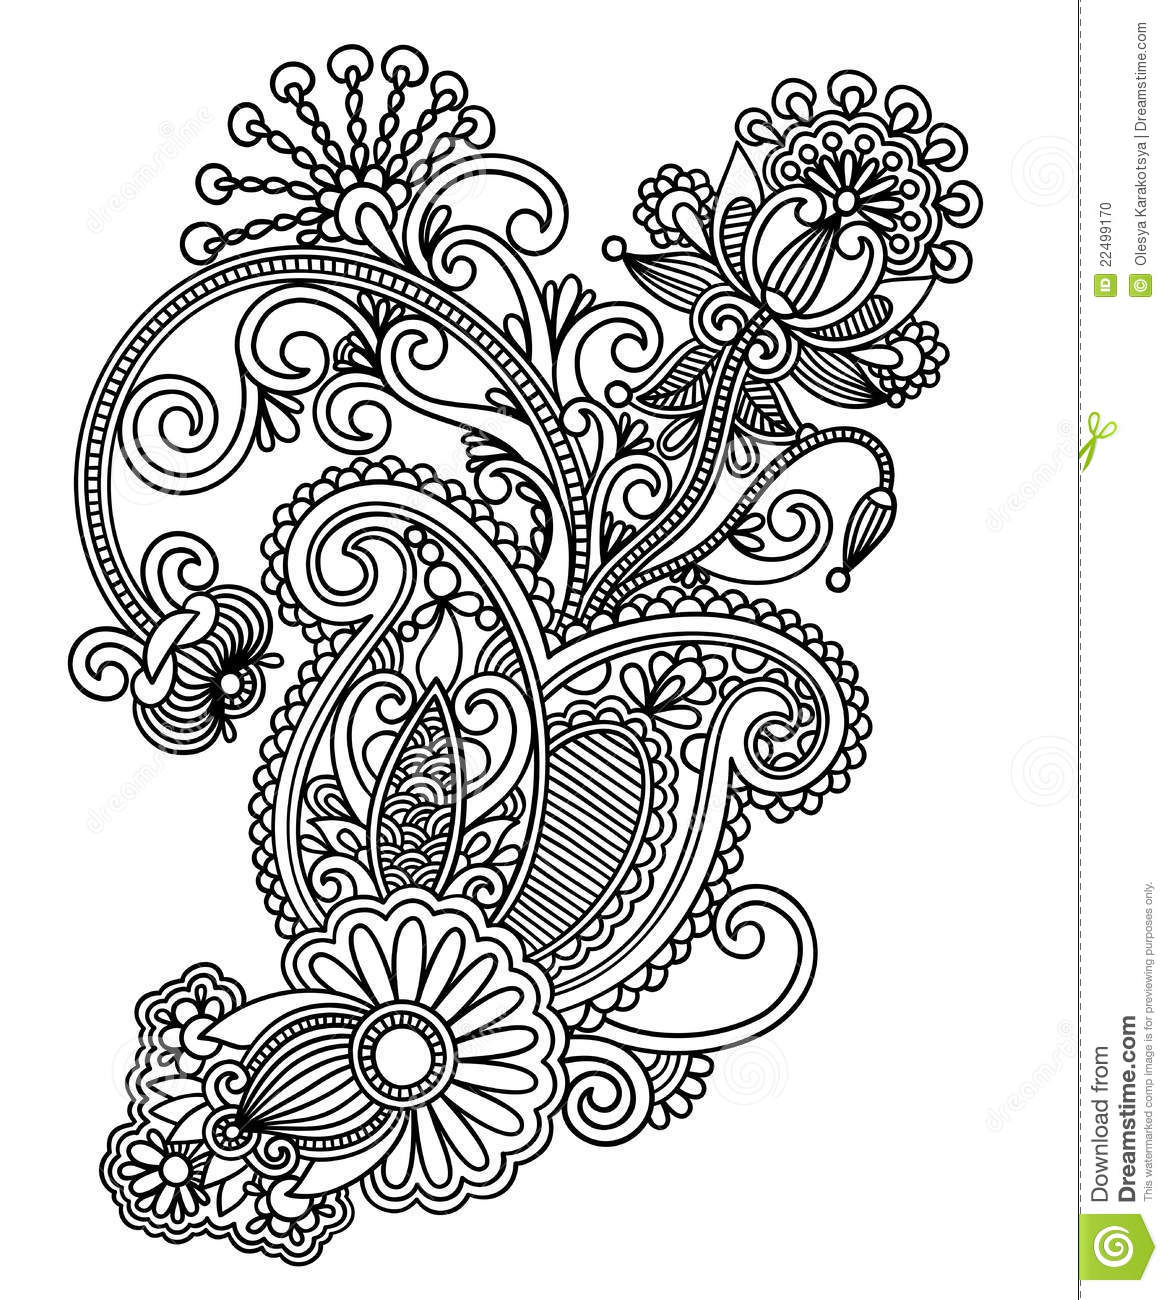 Line Design Art With Mr E : Line art ornate flower design stock vector illustration